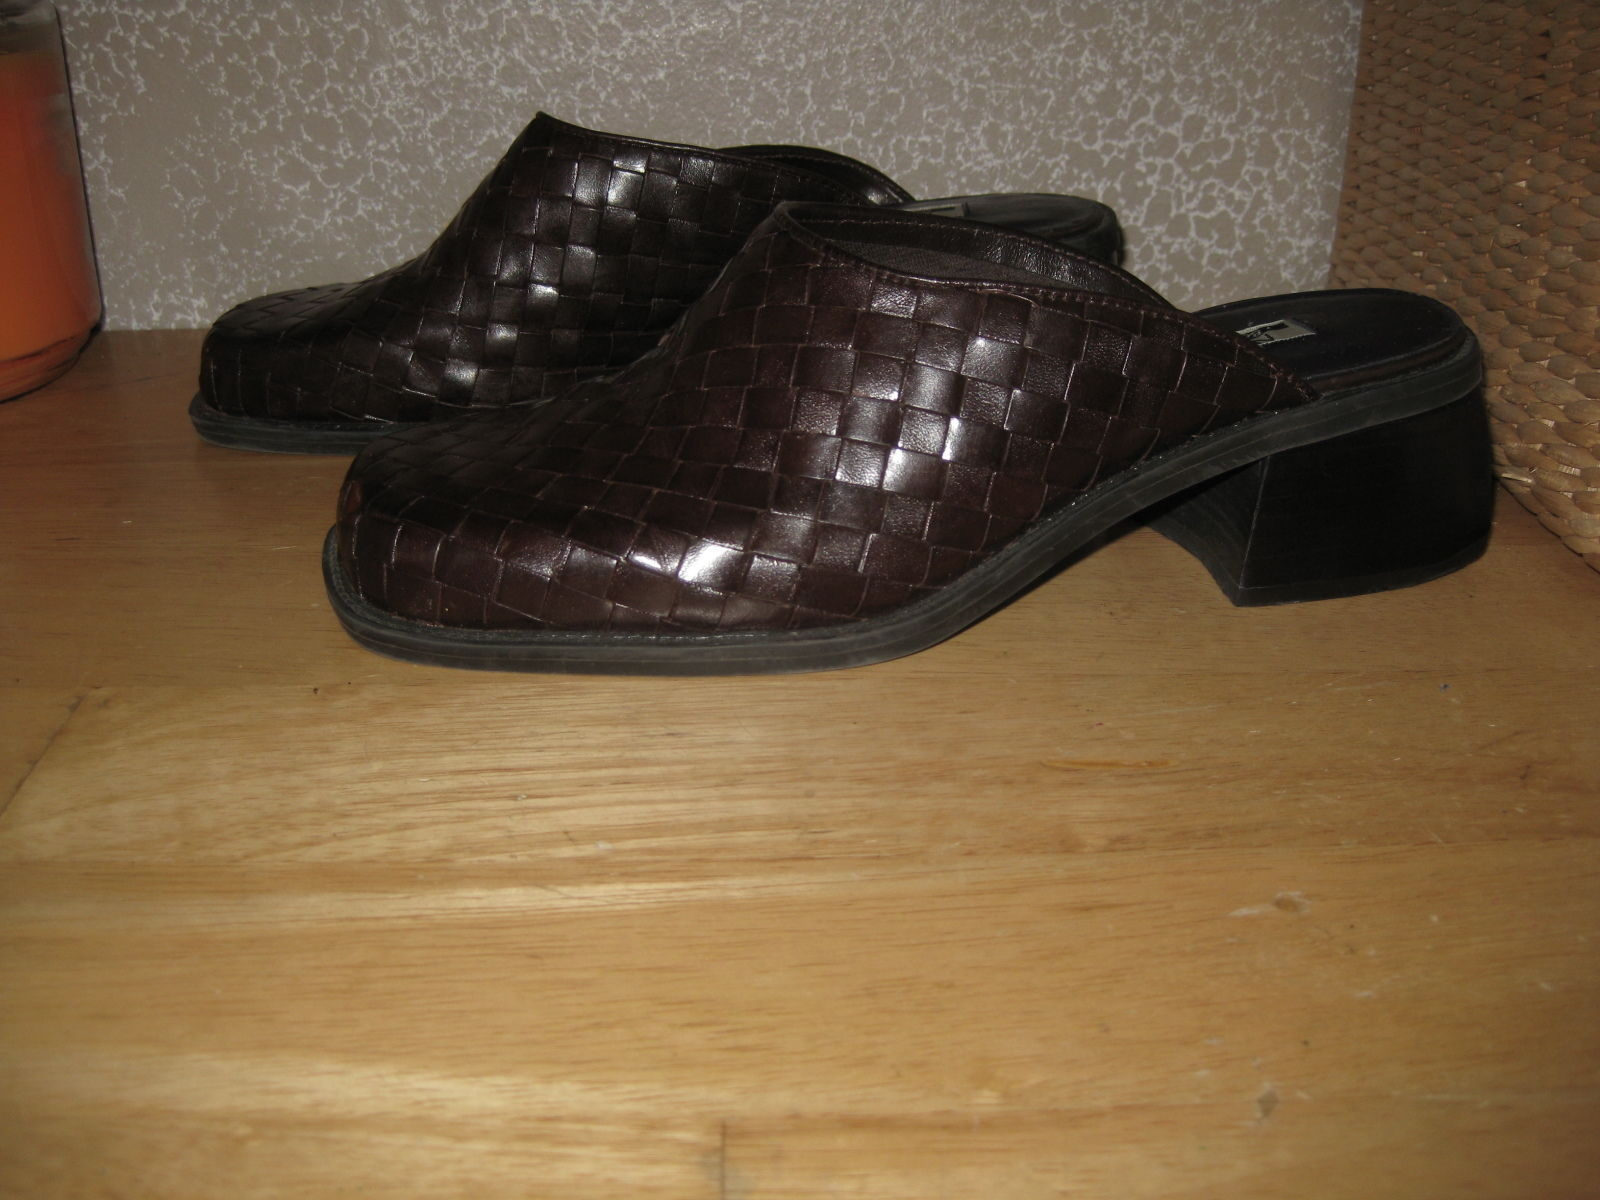 Womens 7 NINE & COMPANY Brn Woven Leather Mules Clogs Slides Shoes PRETTY & NICE